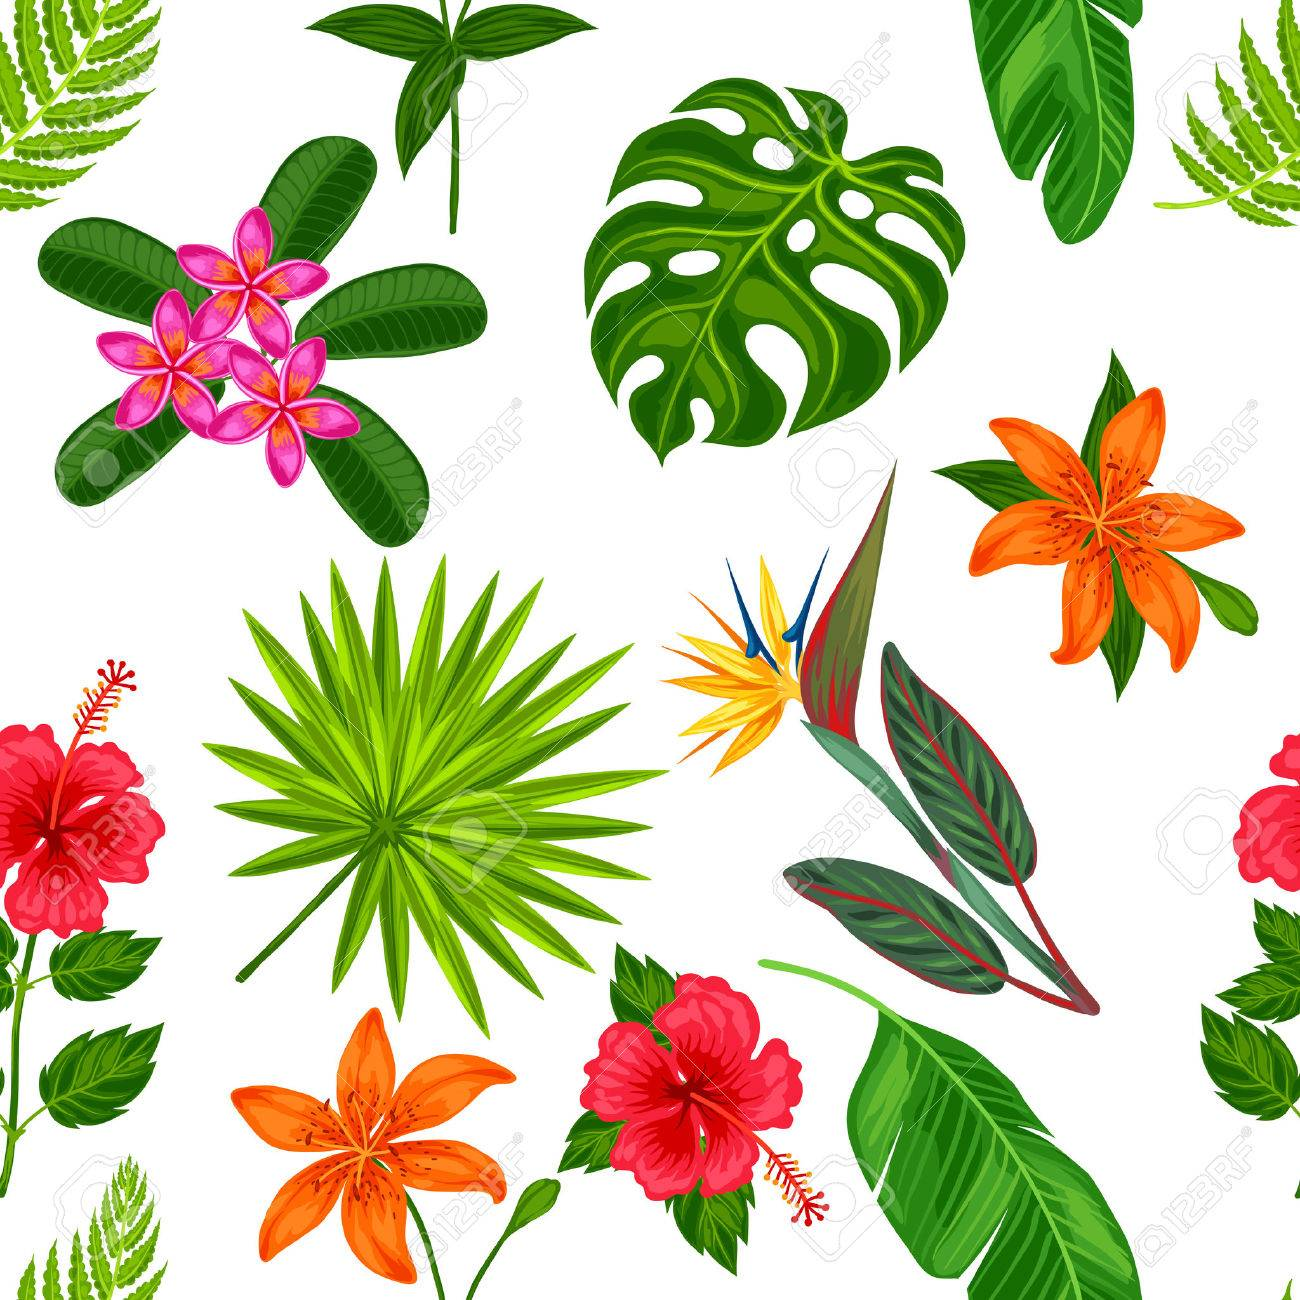 Seamless pattern with tropical plants, leaves and flowers. Background made without clipping mask. Easy to use for backdrop, textile, wrapping paper. - 55229909